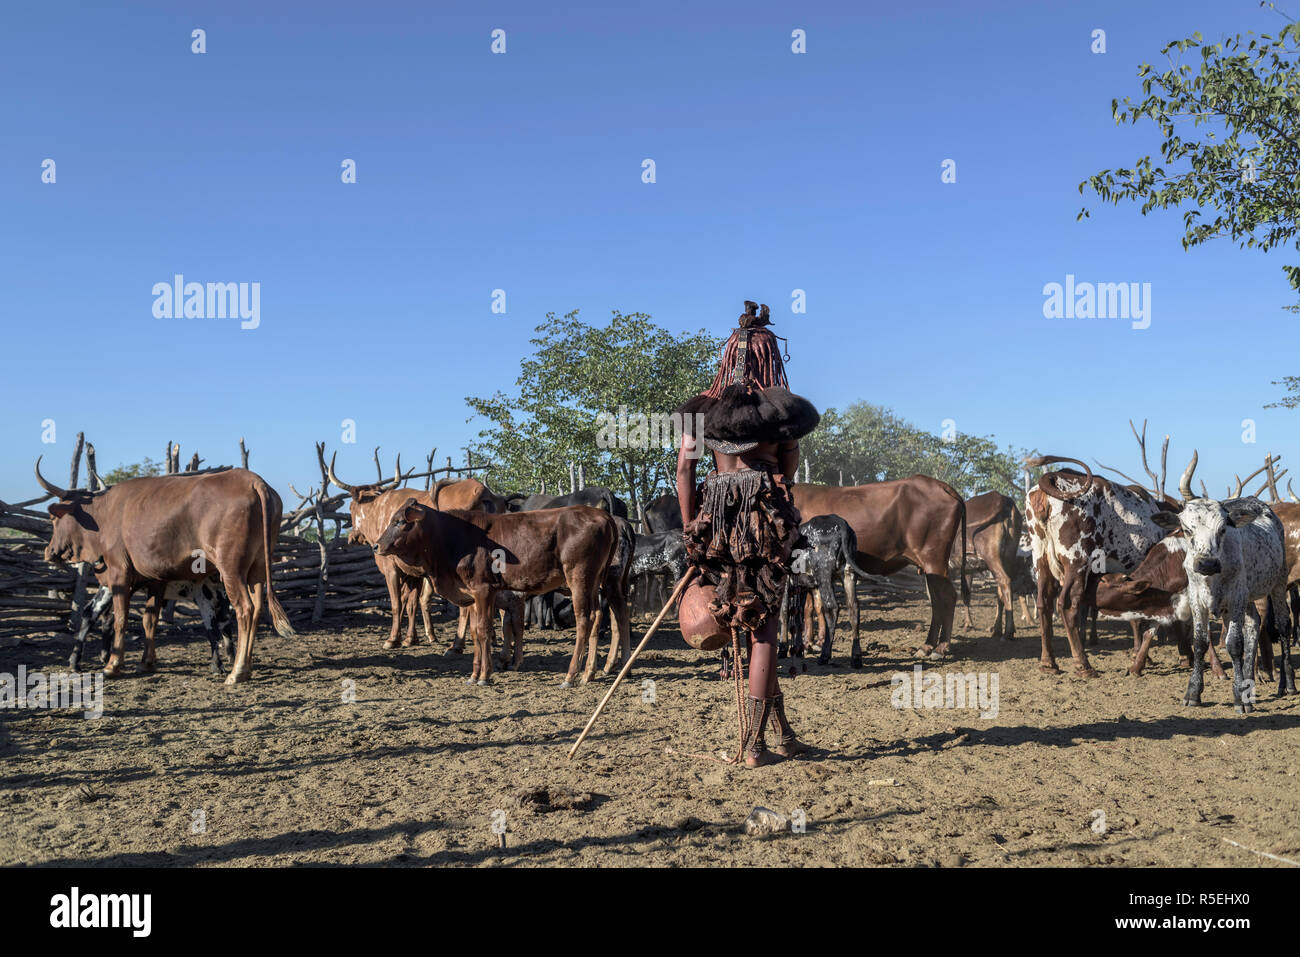 Himba woman standing inside the corral ready to milk the cows. Stock Photo